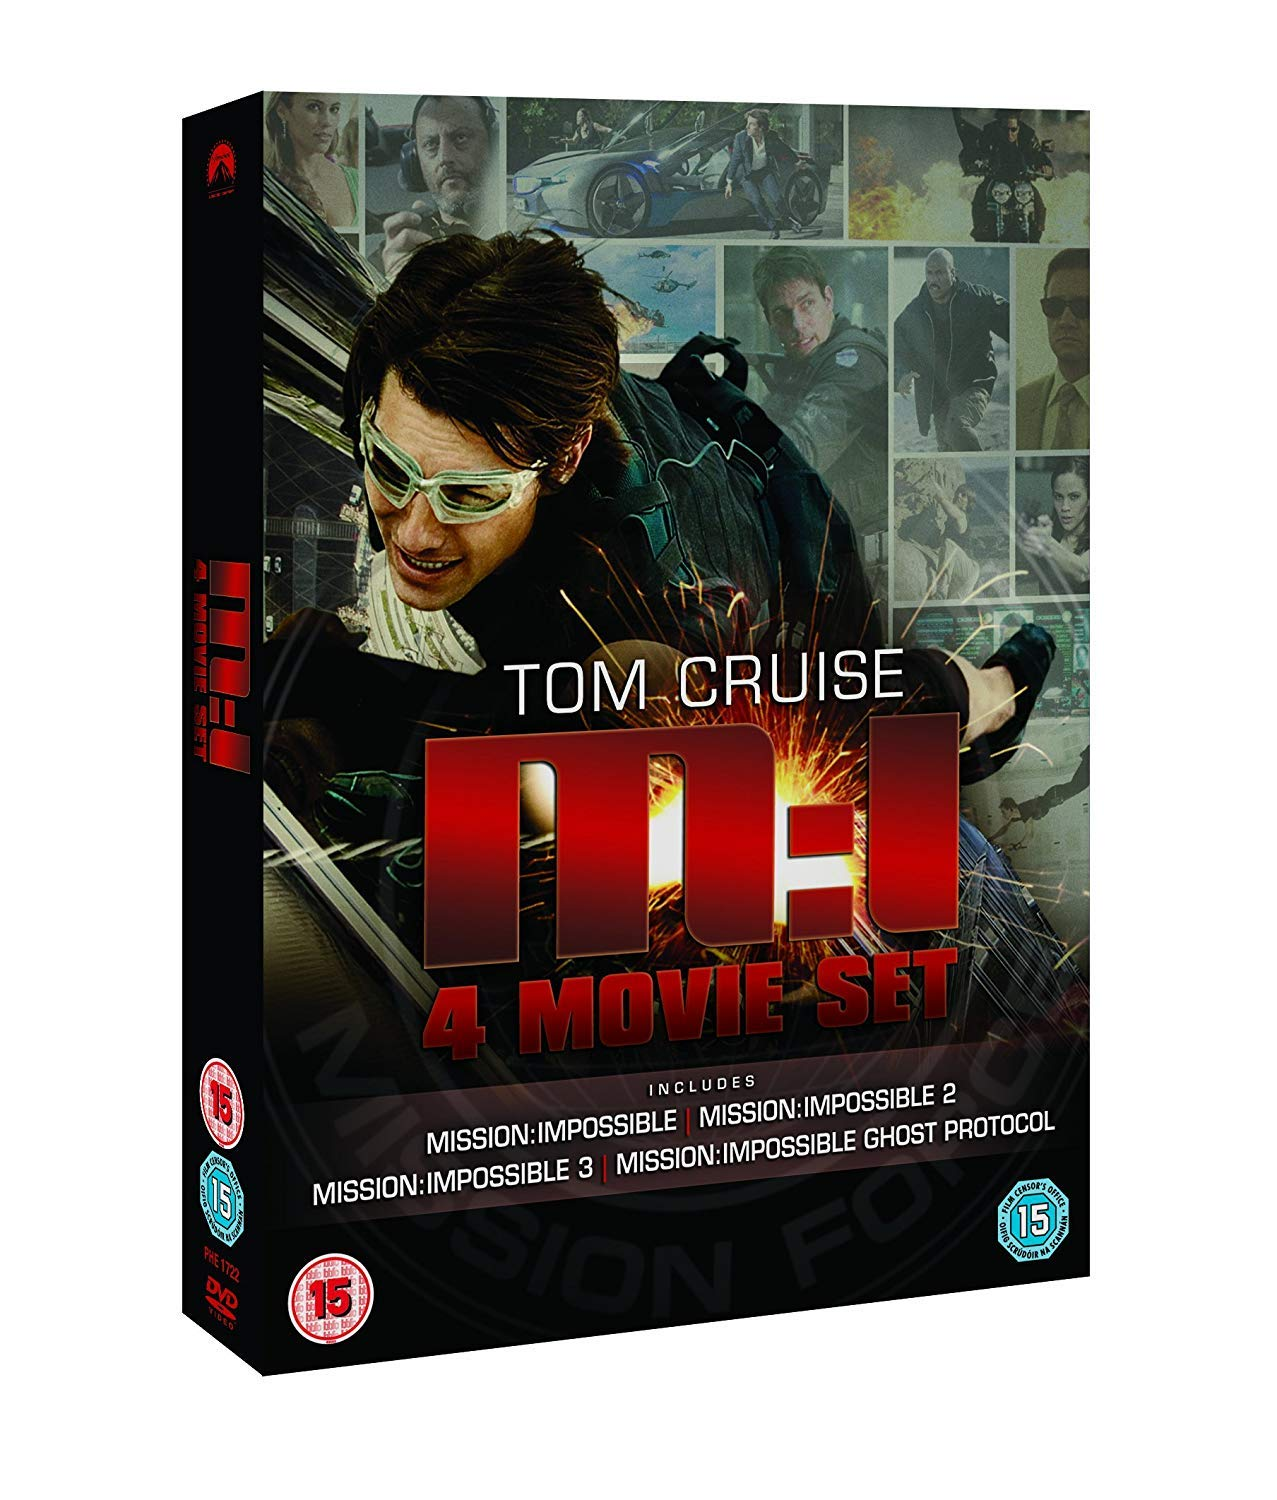 Mission Impossible: Quadrilogy 1-4 Box Set DVD by Tom Cruise ...